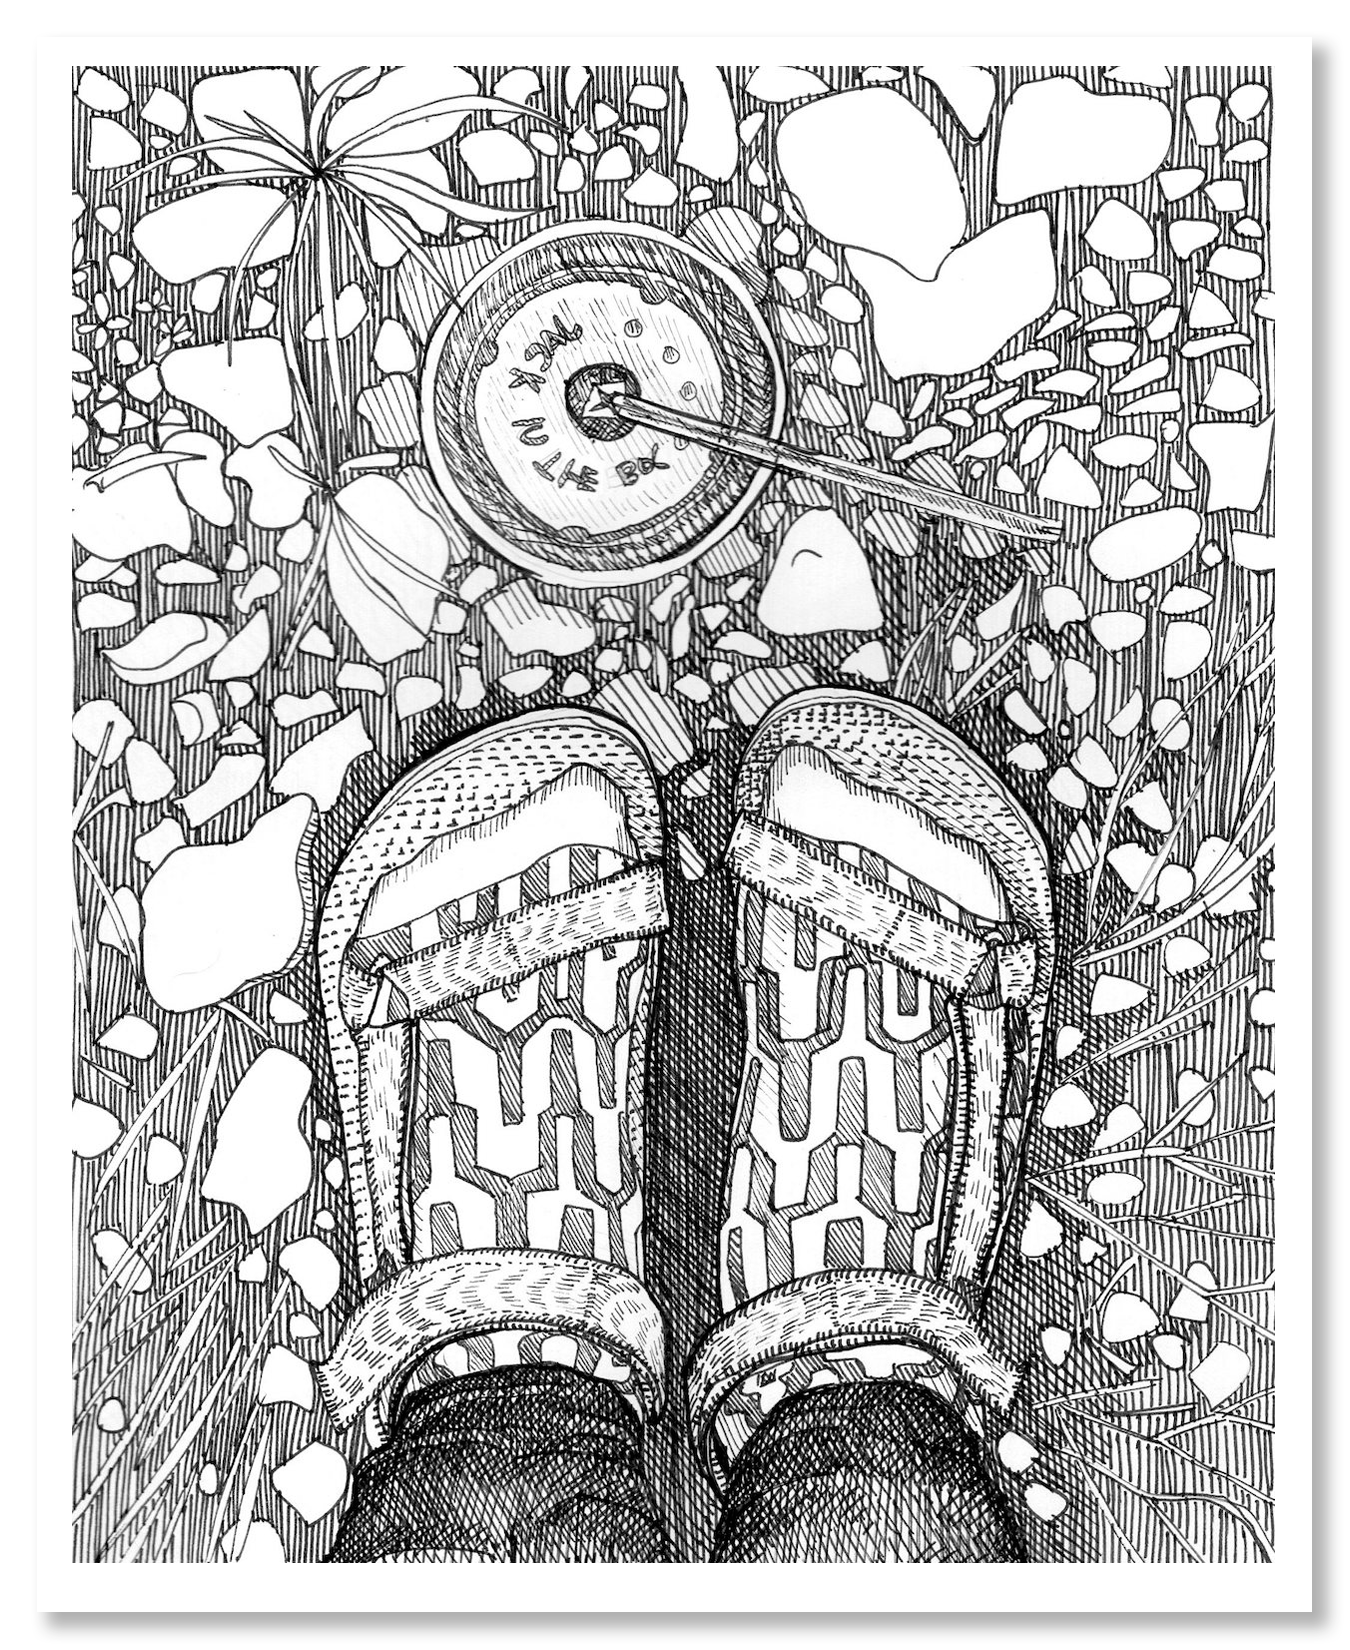 """Excerpt from 'Meant to Last'   This is one page of a 10 page illustrated zine.  Created for the Lion's Main Art Collective's pop-up show, 'Erasure'.  8.5""""x10""""  Pen on Paper, 2016"""